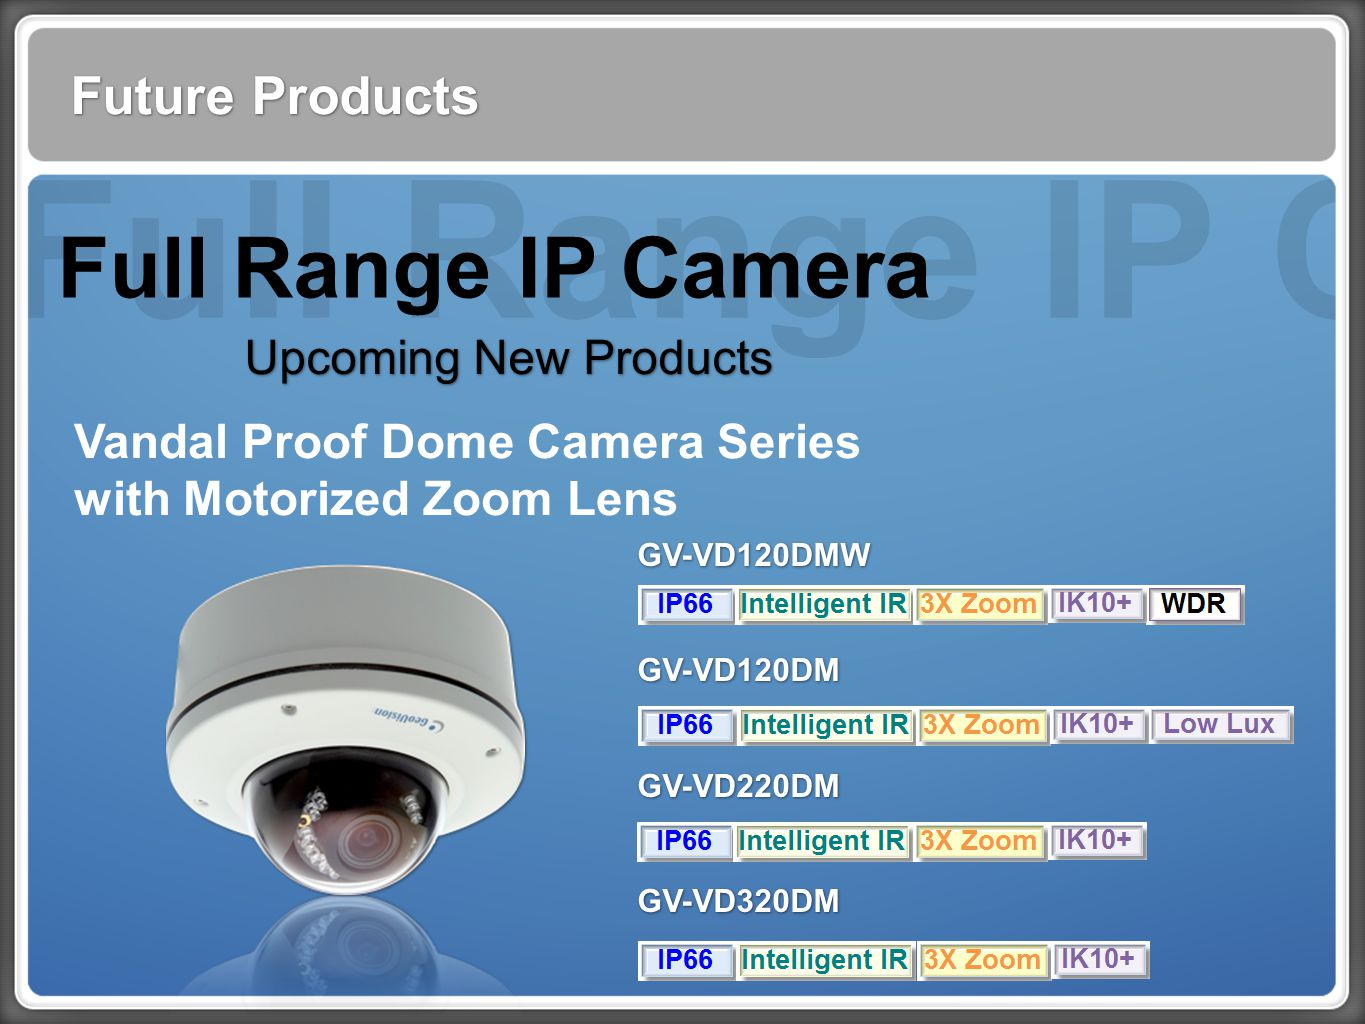 Full Range IP Cam Full Range IP Camera Future Products